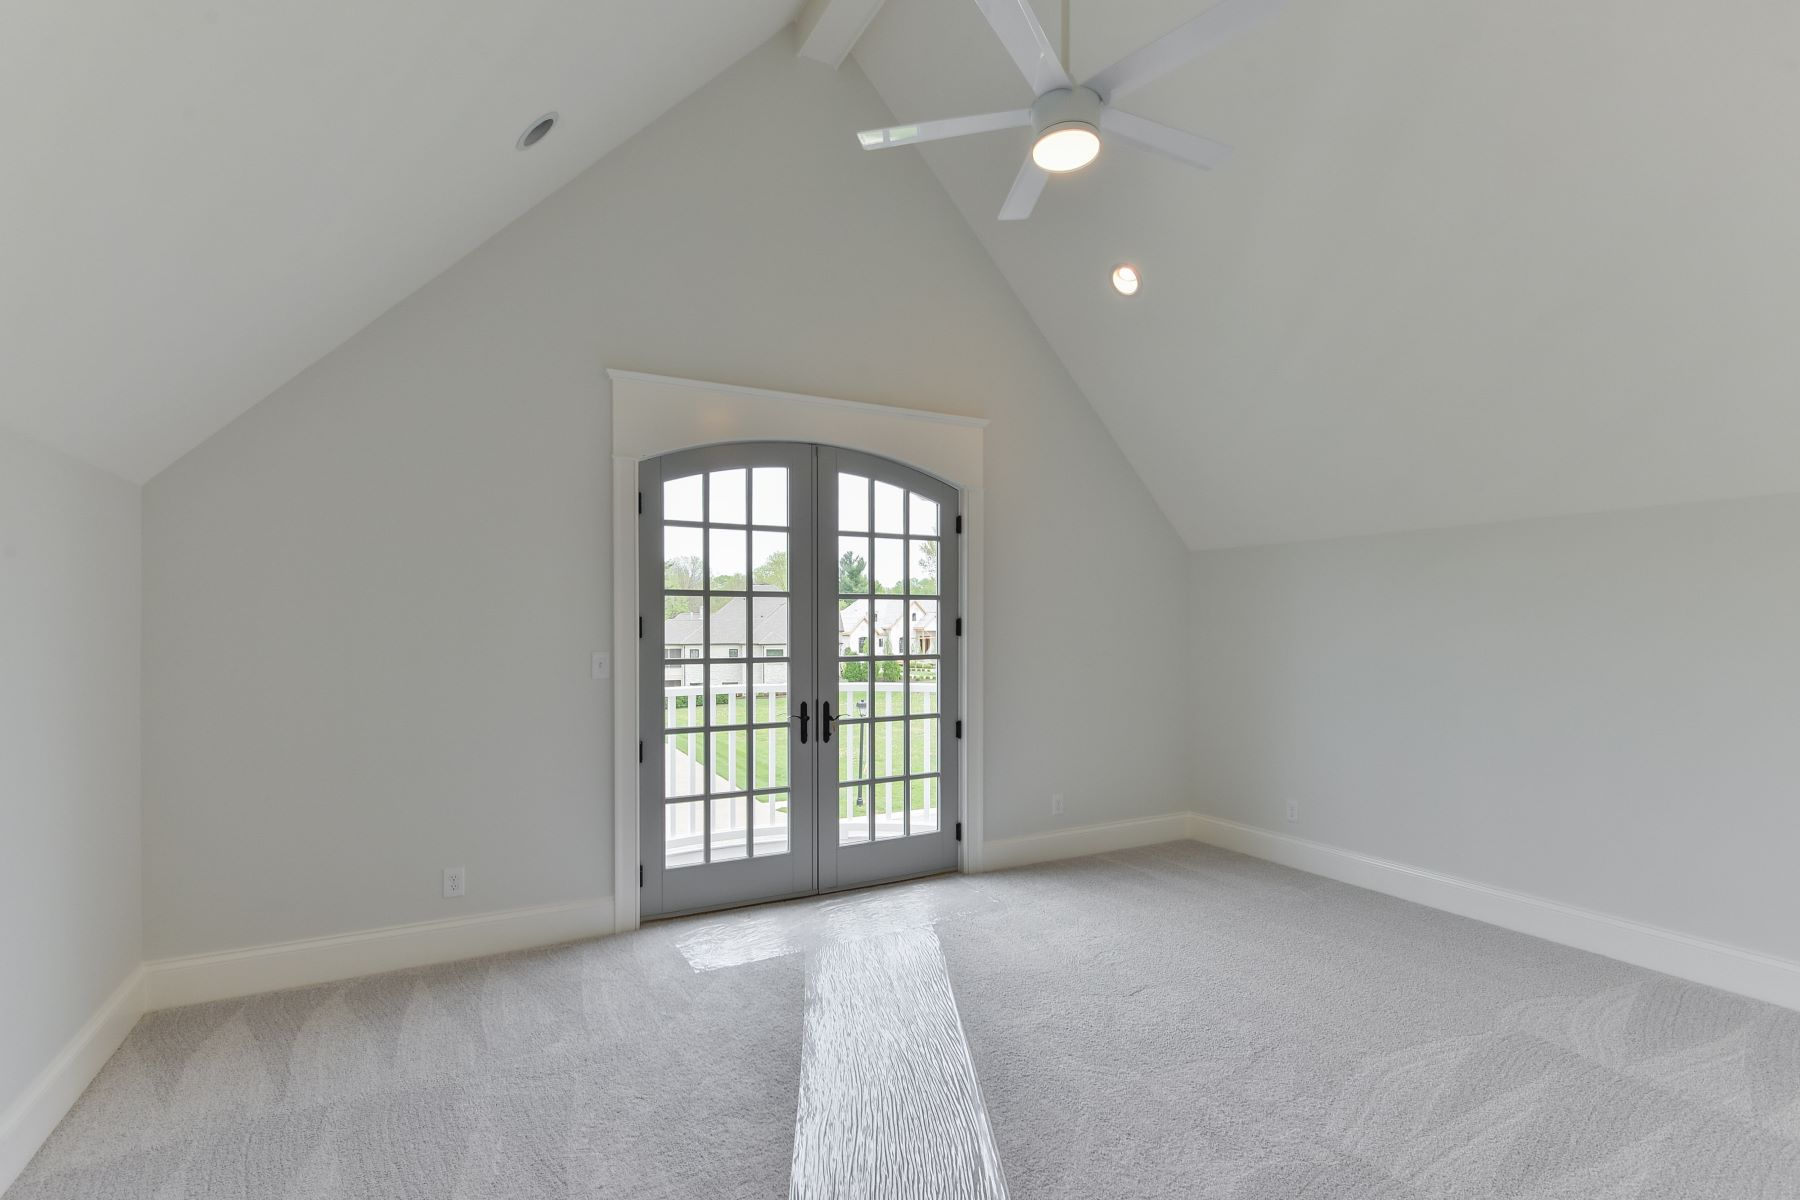 Additional photo for property listing at 3006 Glenview Park Way  Louisville, Kentucky 40222 United States